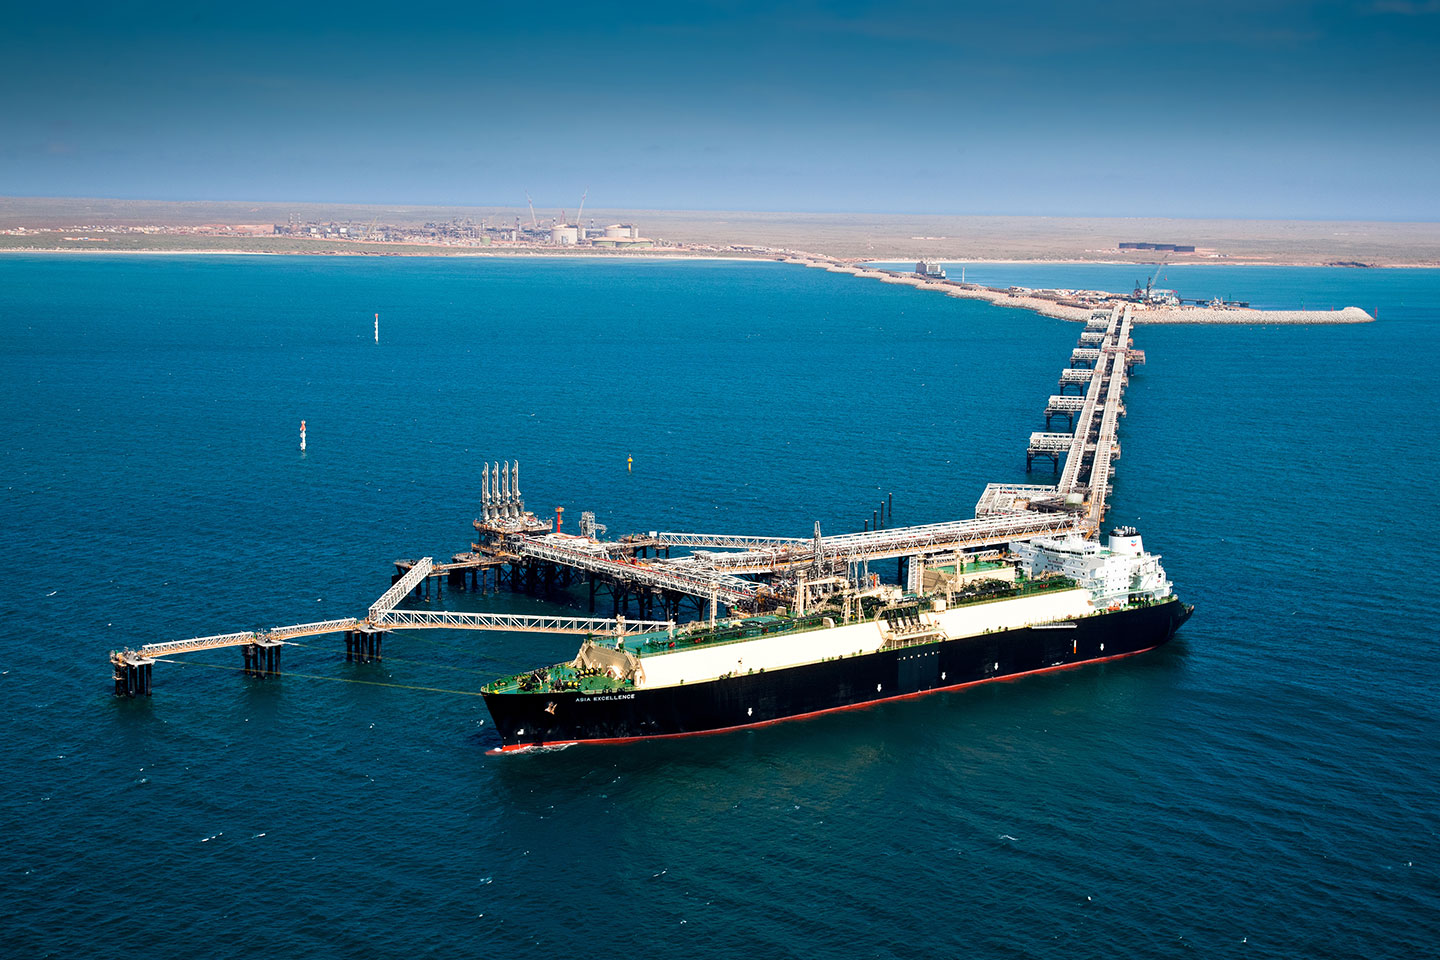 Chevron's Gorgon facility on Barrow Island